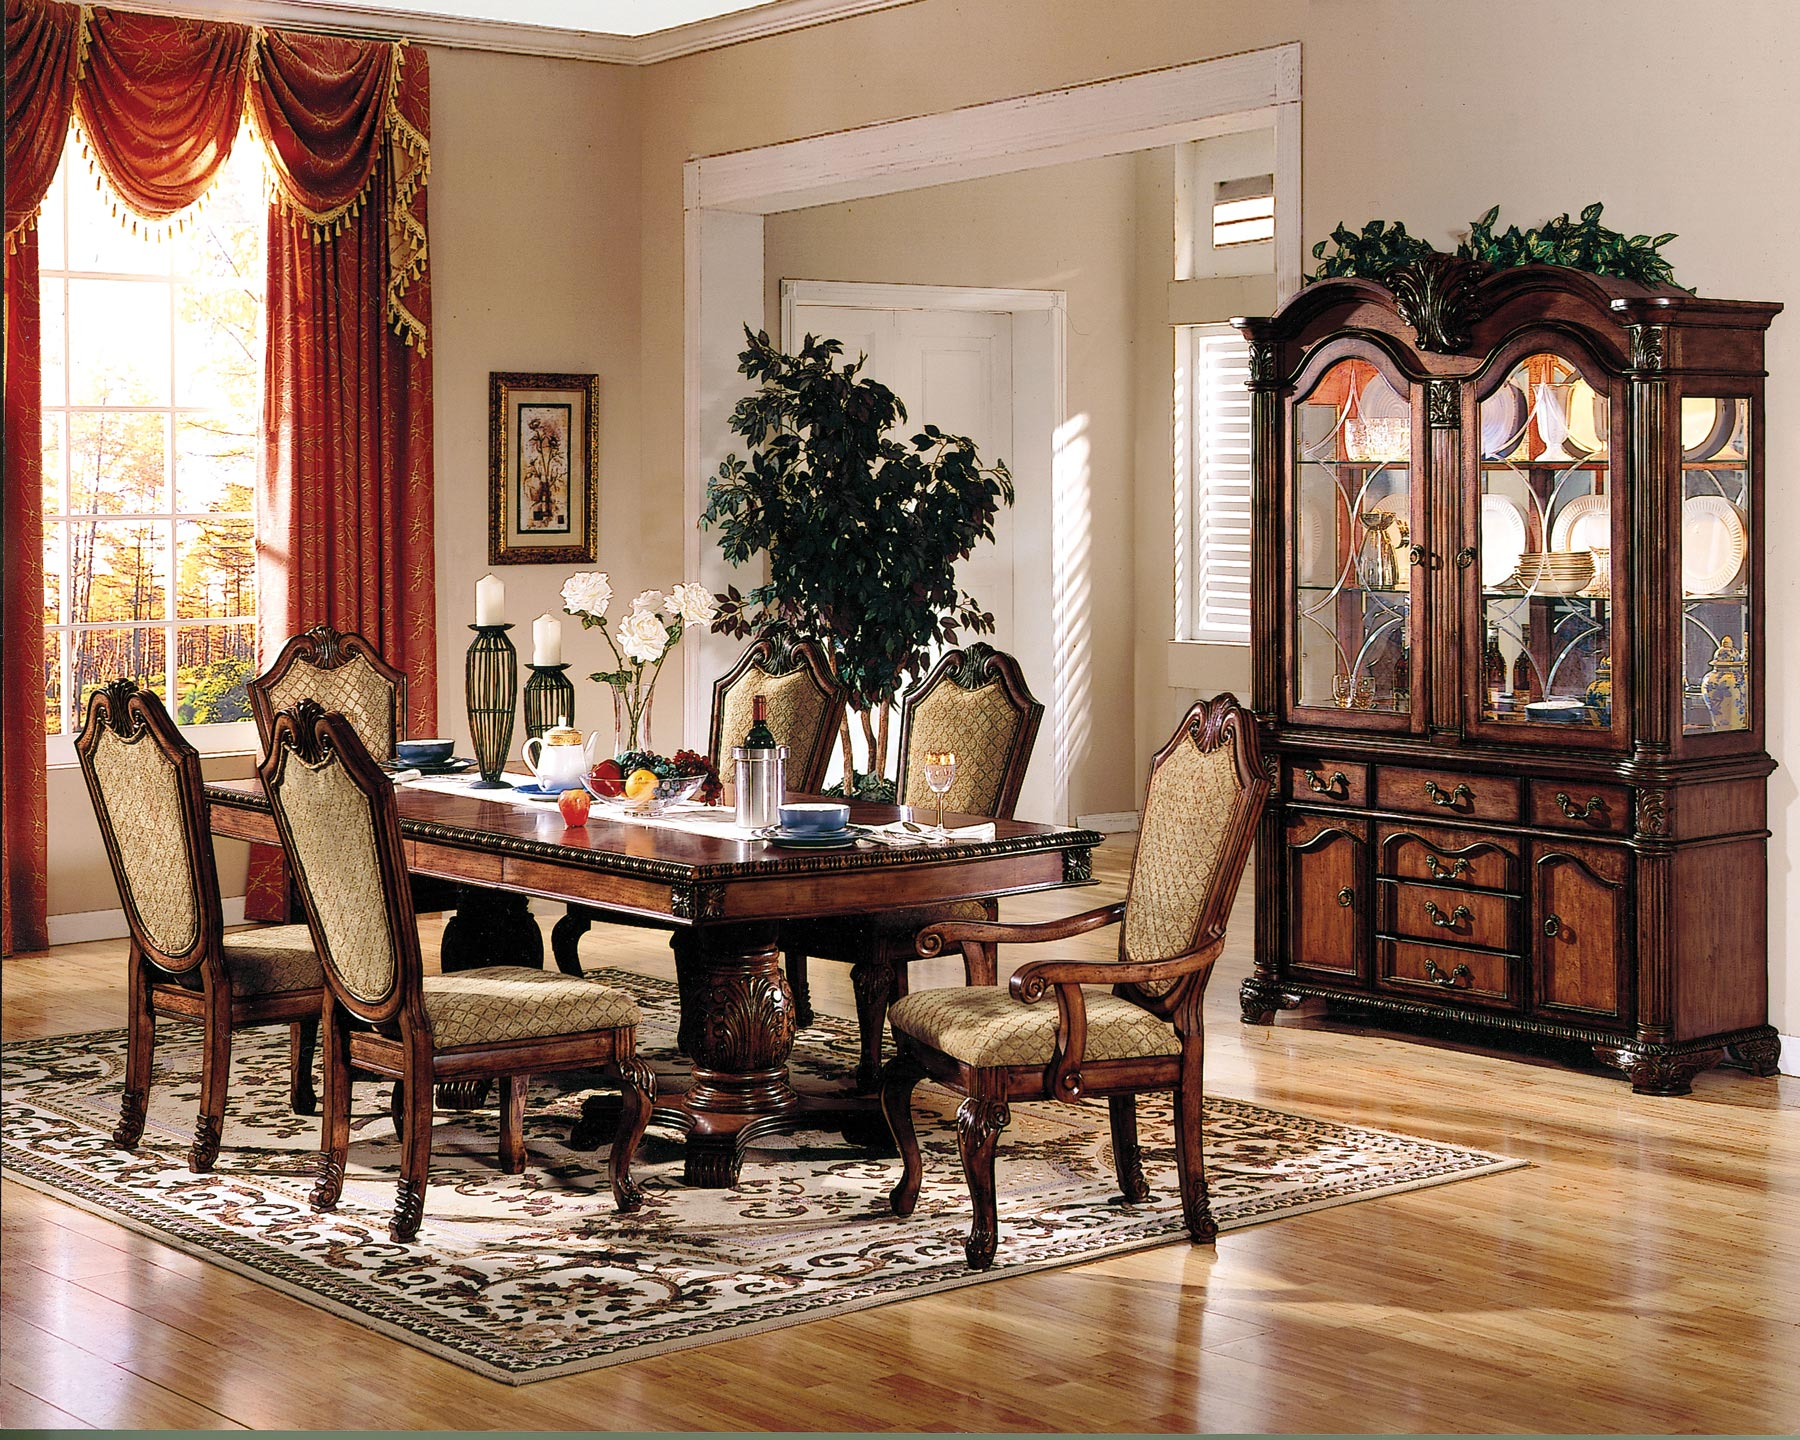 Chateau de ville 7 piece dining room set gonzalez furniture chateau de ville 7 piece dining room set dzzzfo